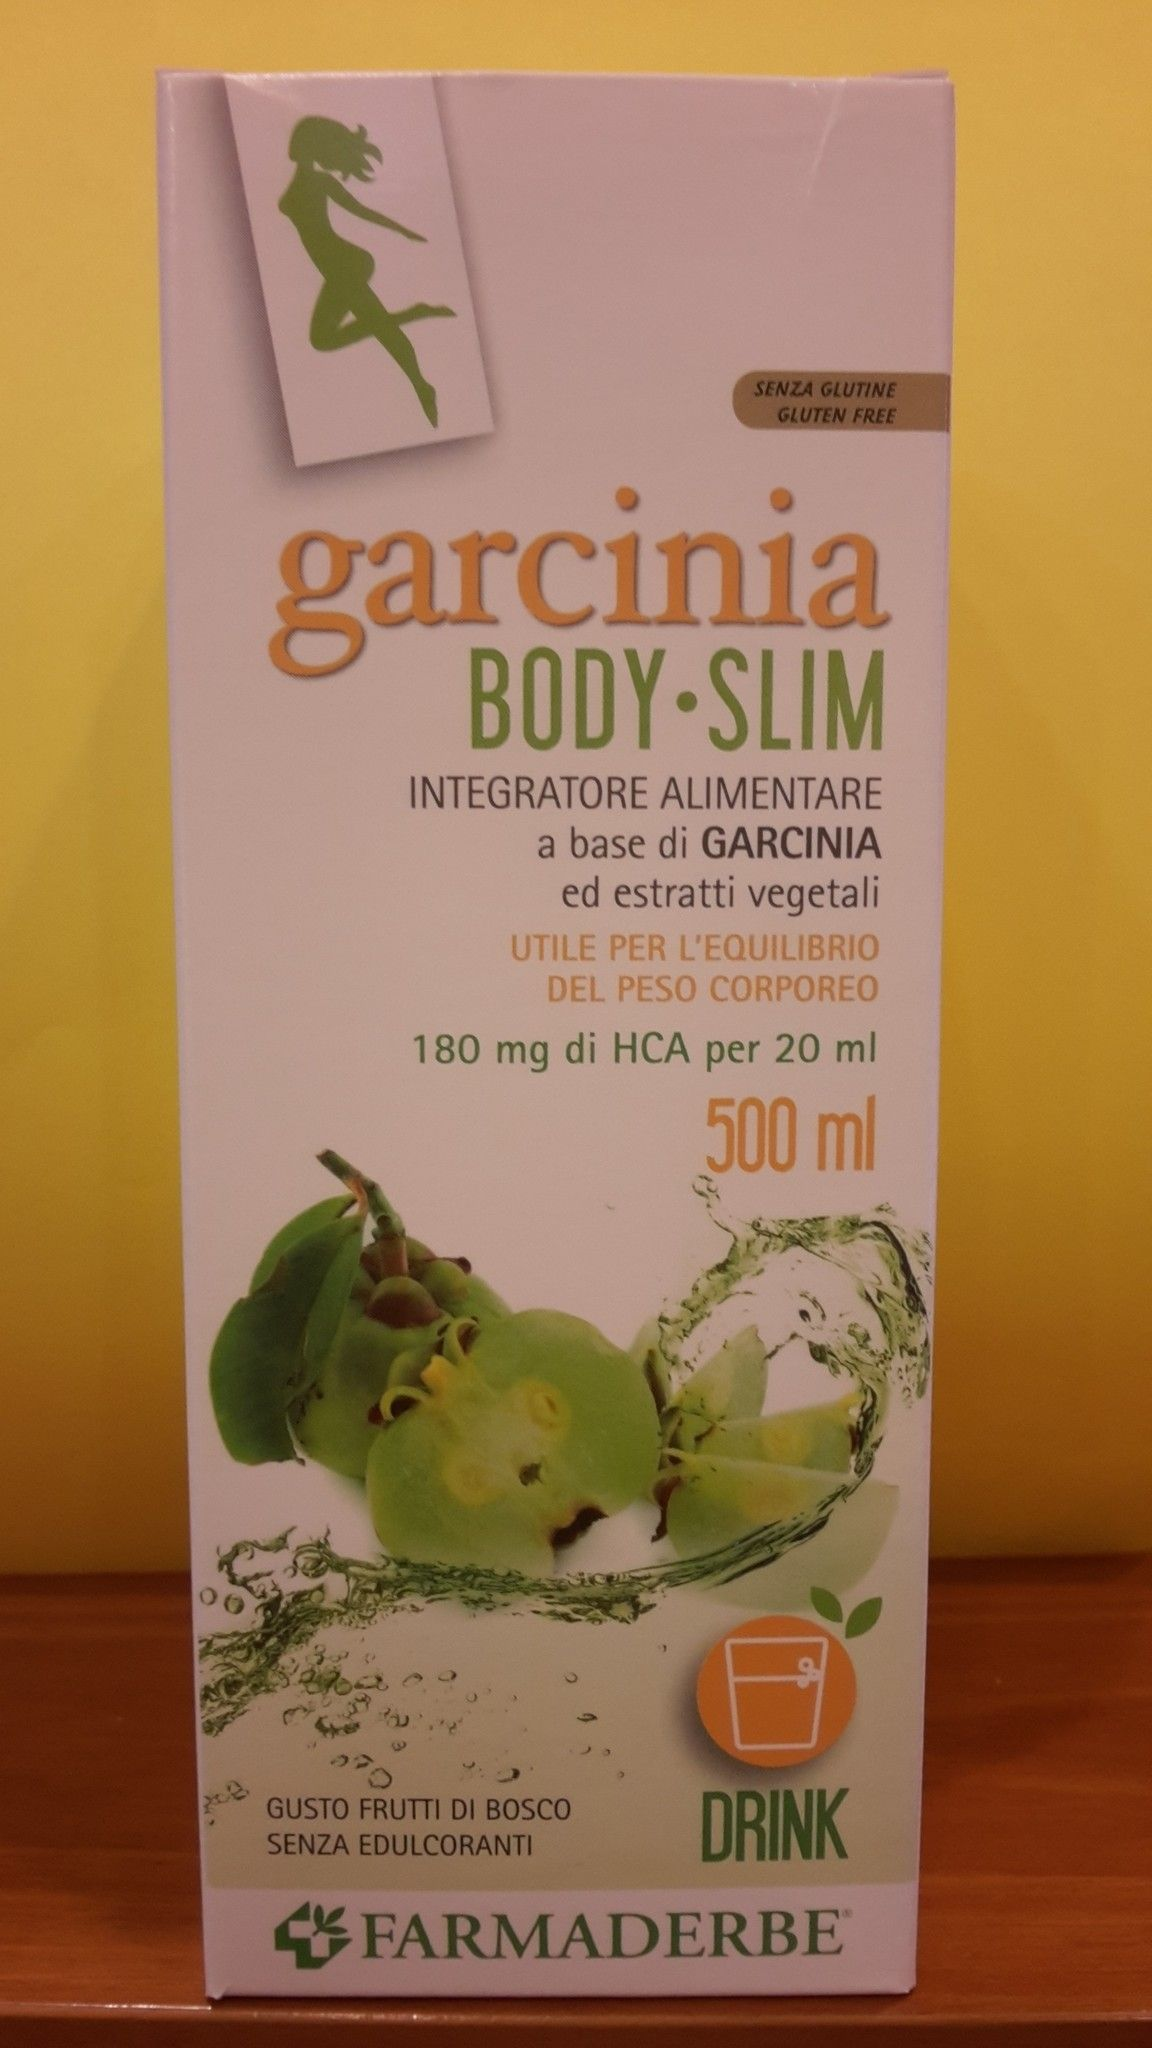 Garcinia BODY- SLIM - 500 ml - FARMADERBE